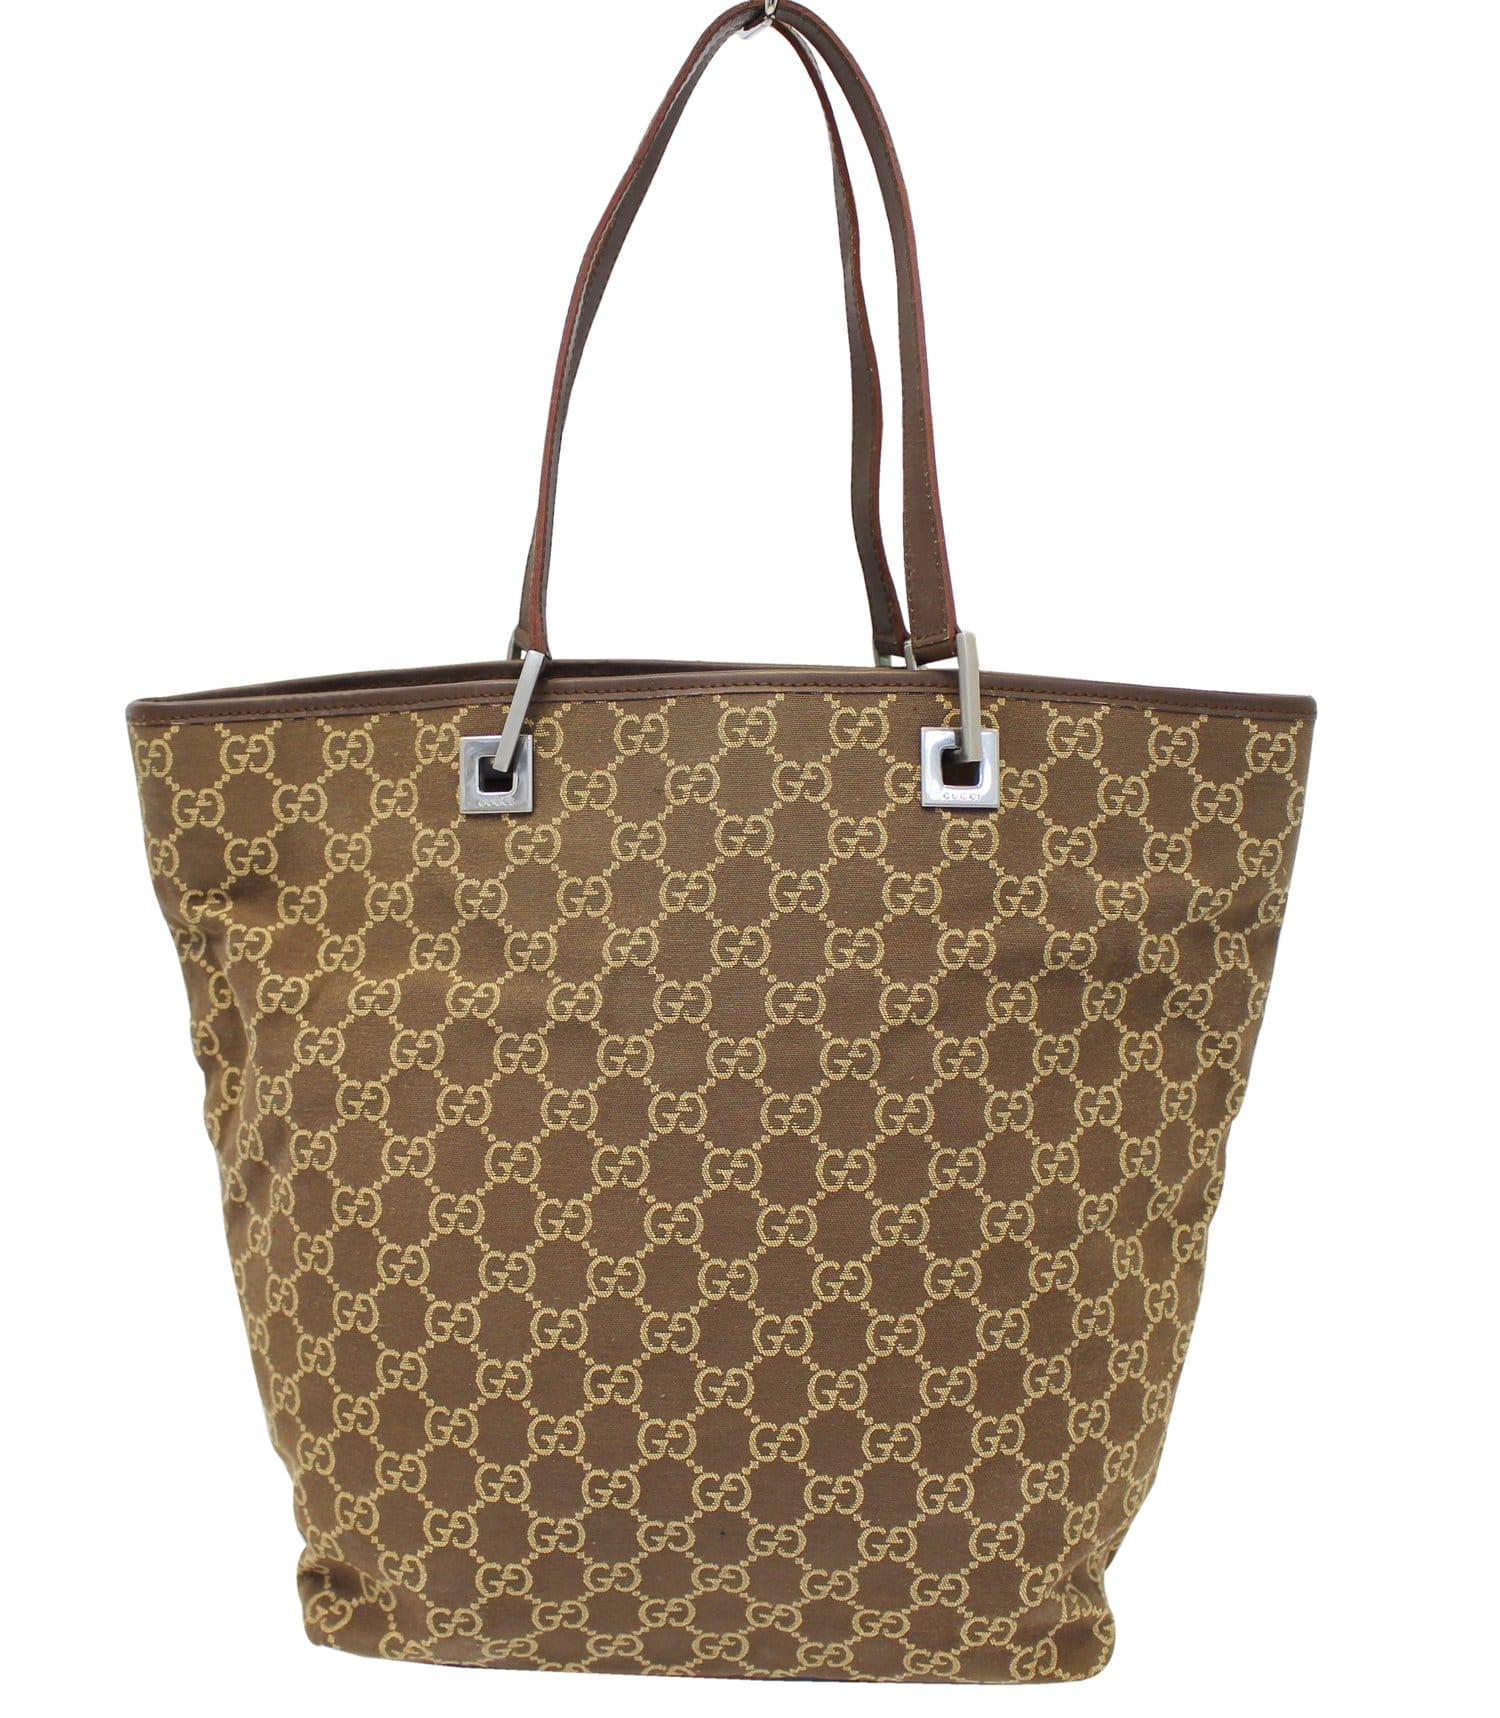 9e13c7147bdf Authentic GUCCI Beige/Brown Monogram Canvas Tote Bag E3772